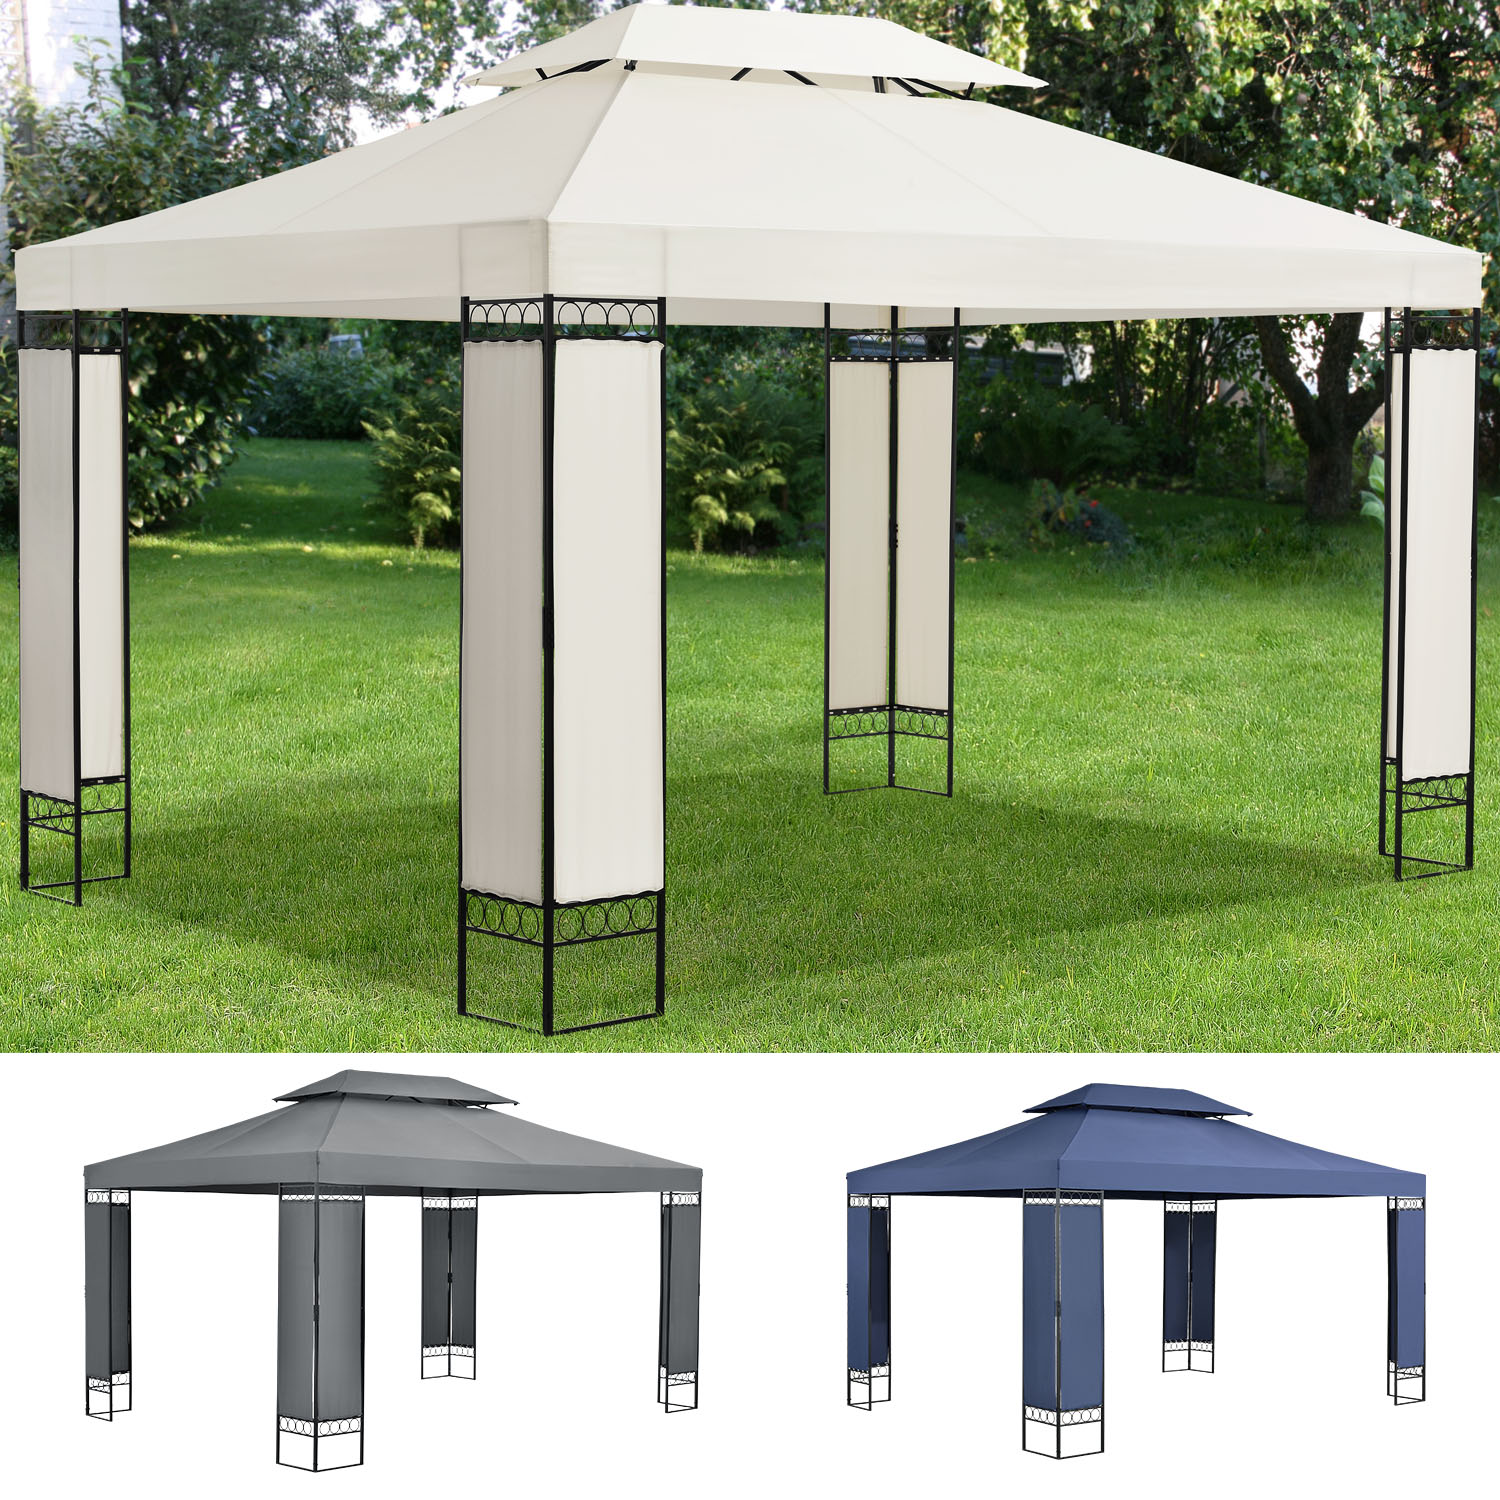 pavillion gartenzelt partyzelt festzelt gartenpavillion gazebo 3x4m metall neu. Black Bedroom Furniture Sets. Home Design Ideas